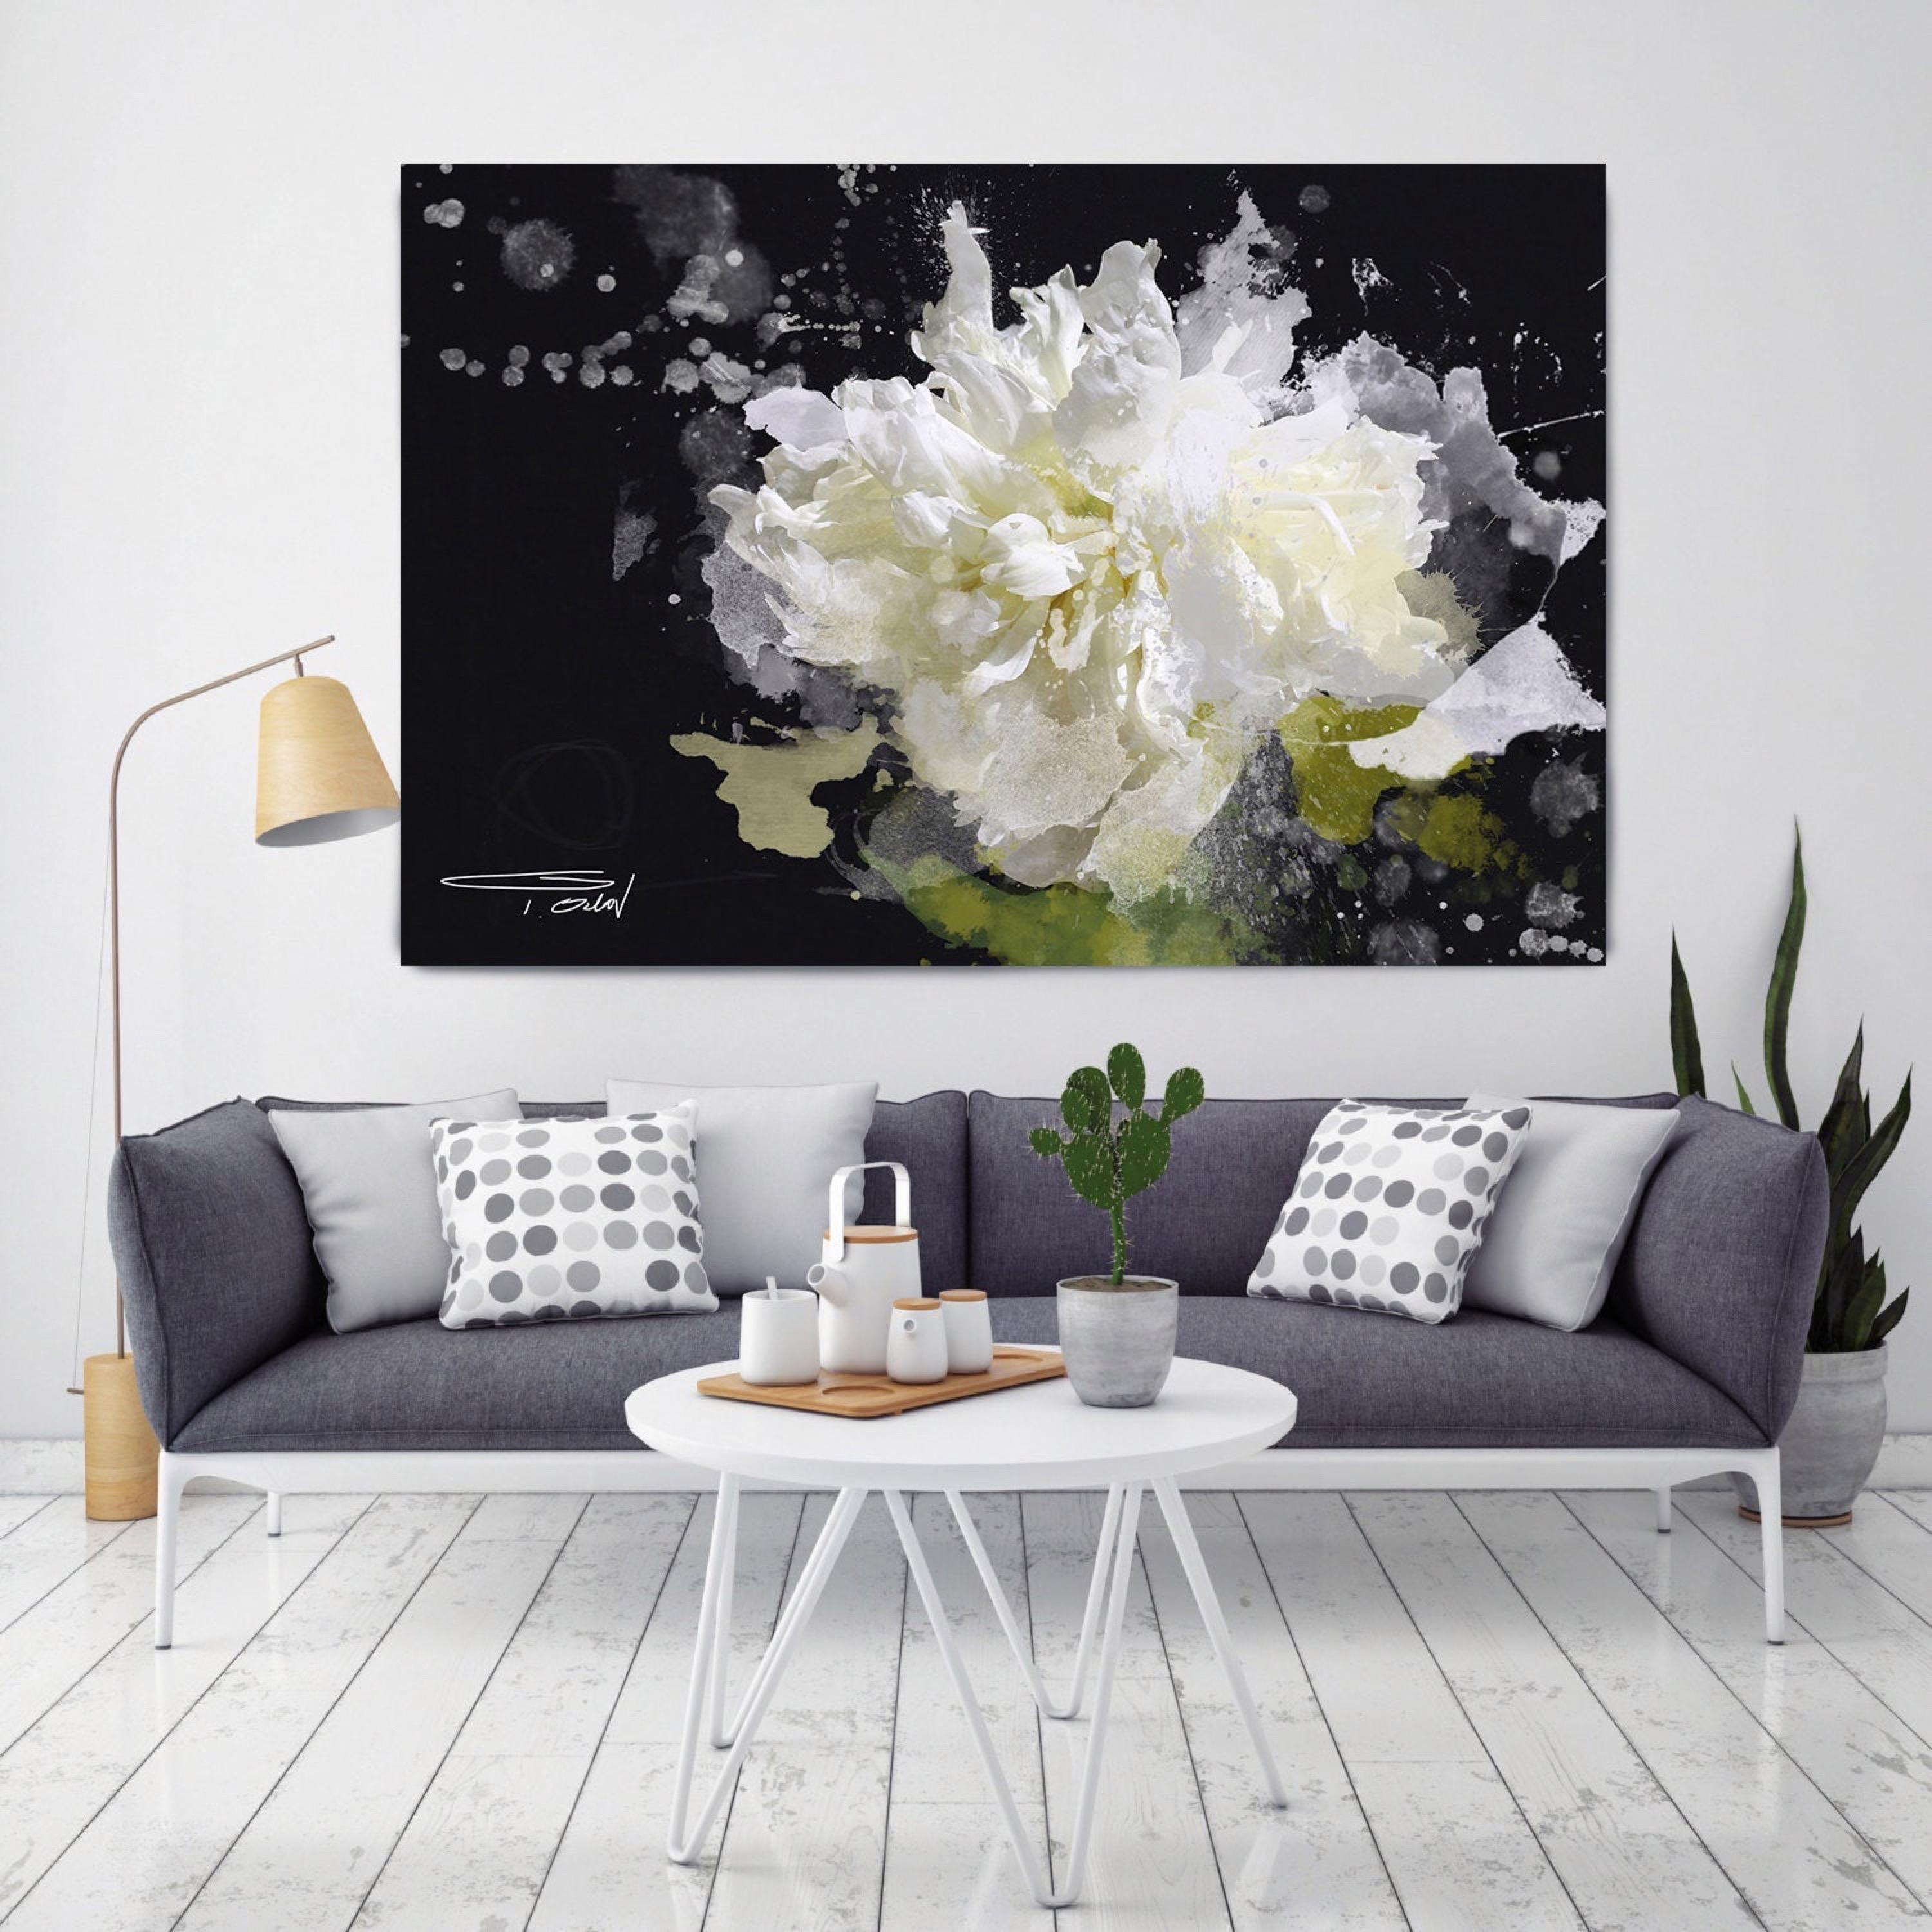 Blow out of the Wind Floral Painting Hand Embellished Textured Giclee on Canvas